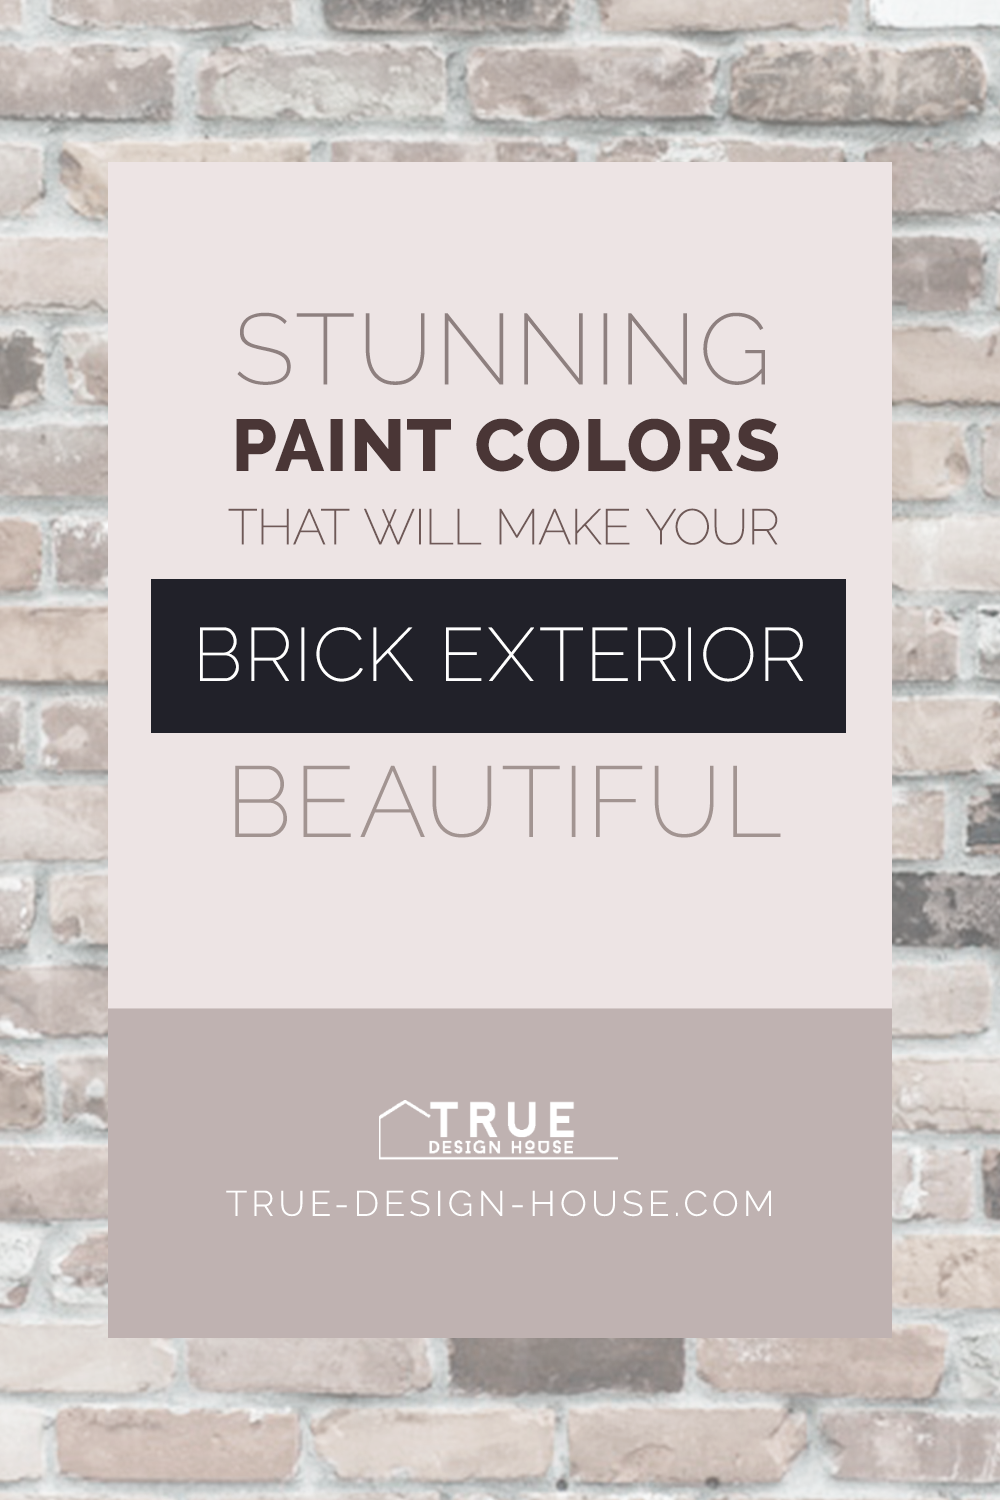 Stunning Paint Colors That Will Make Your Brick Exterior